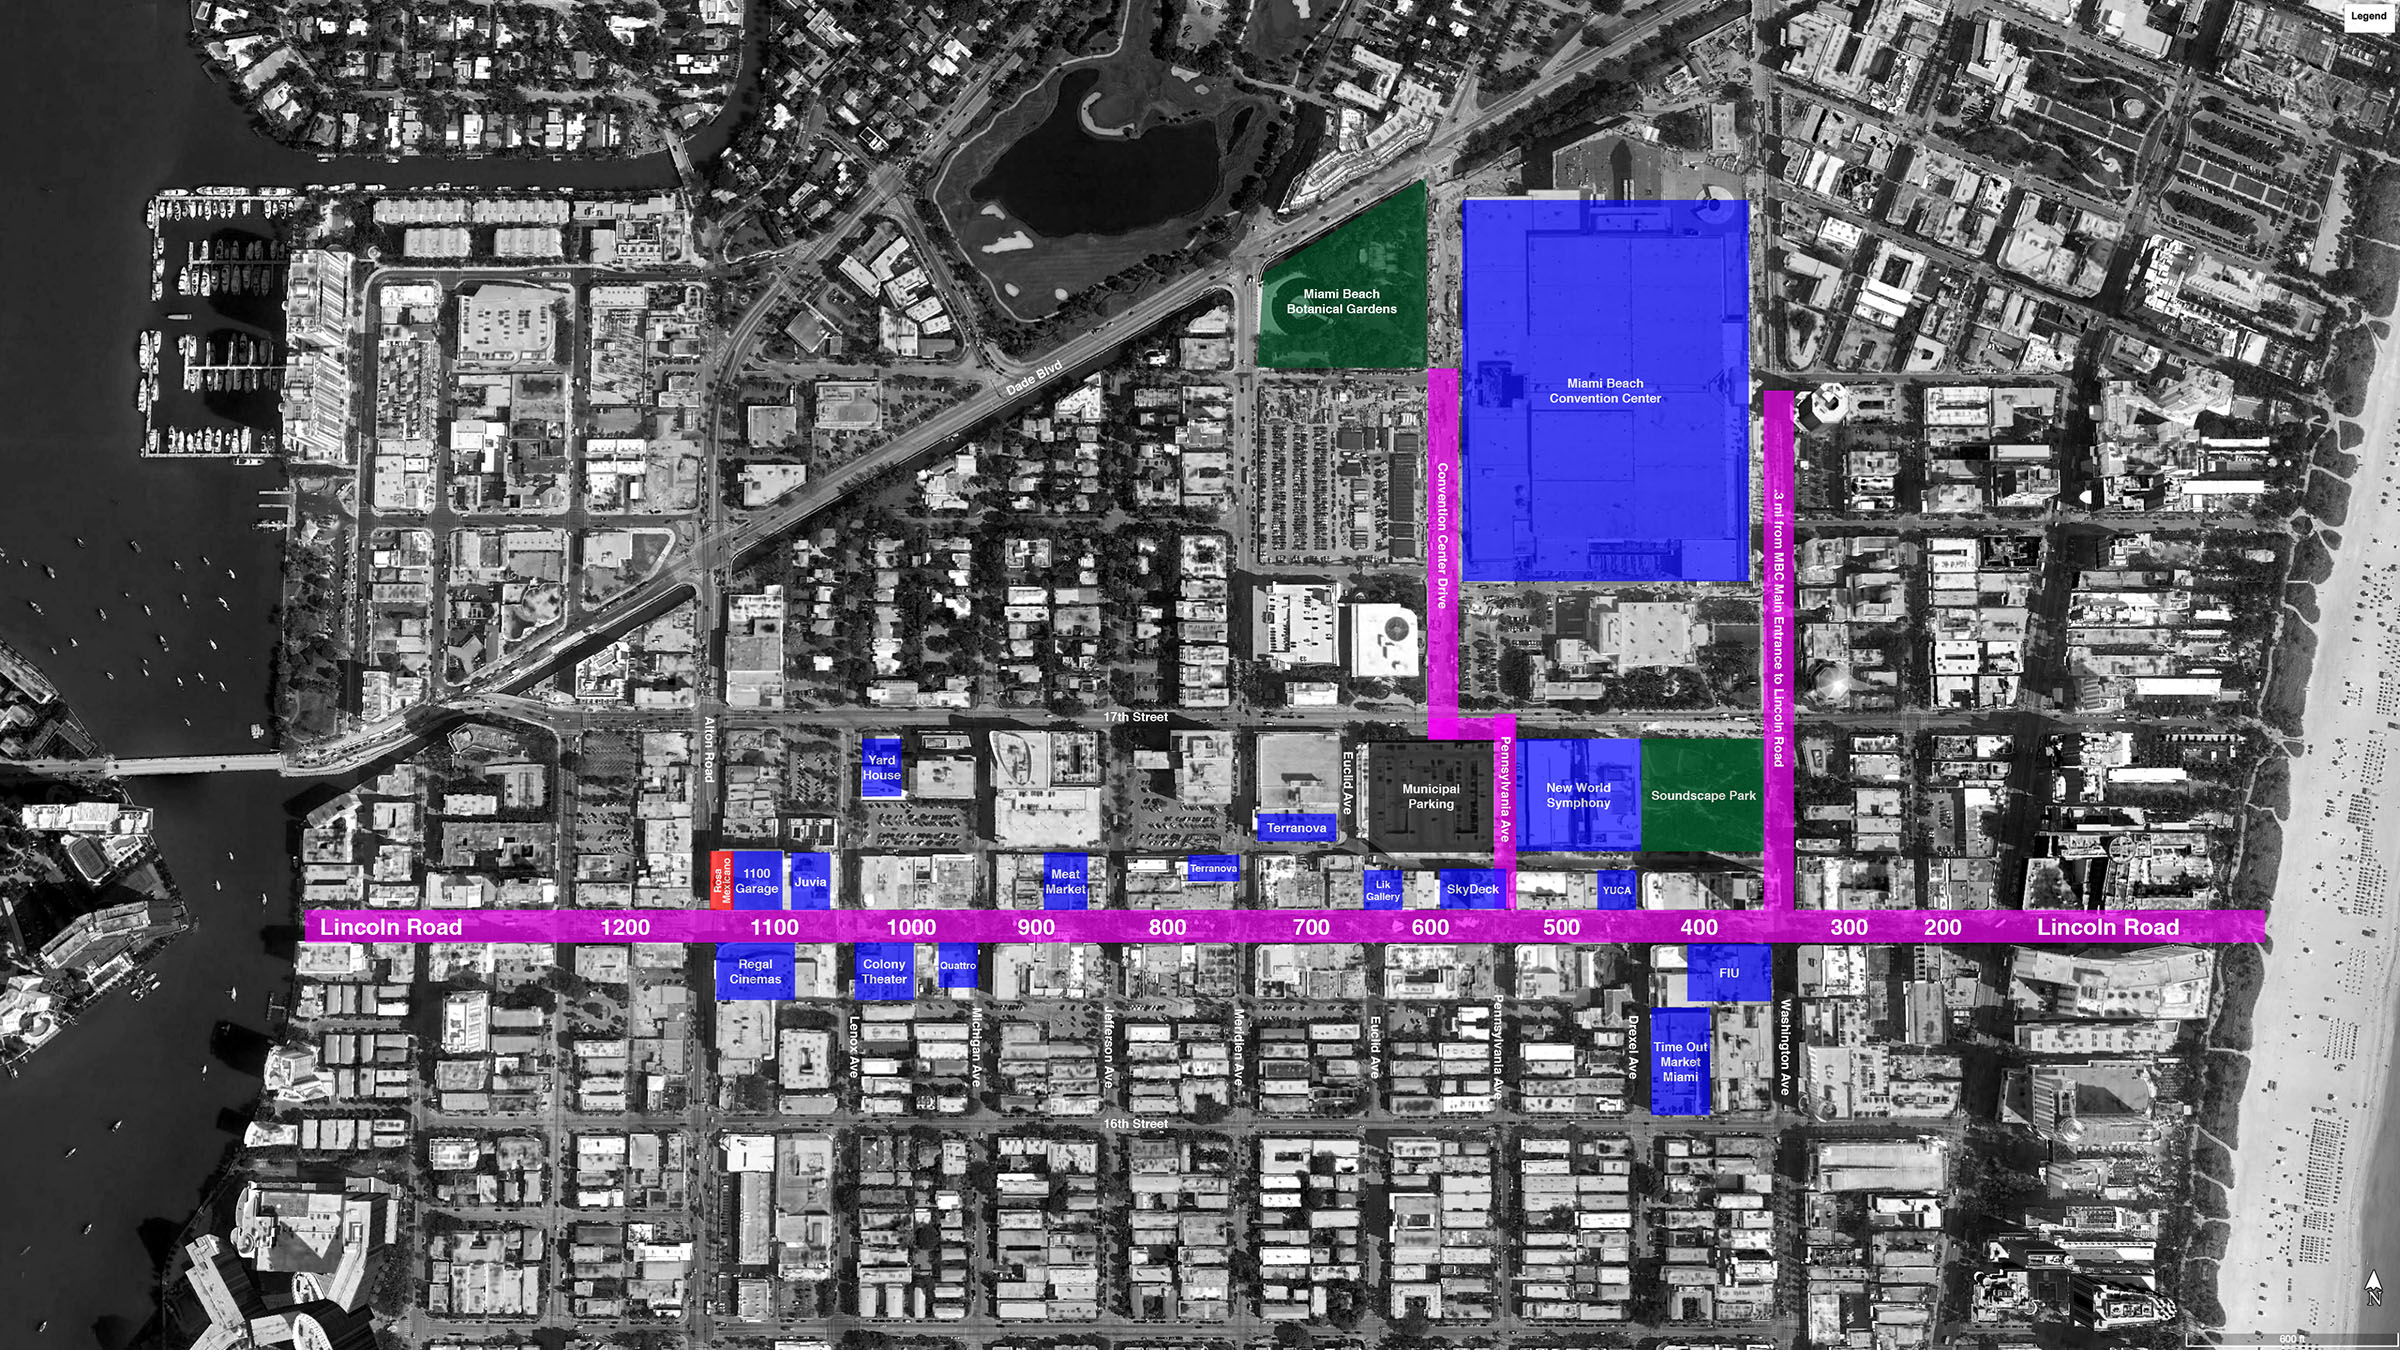 Lincoln Road BID map